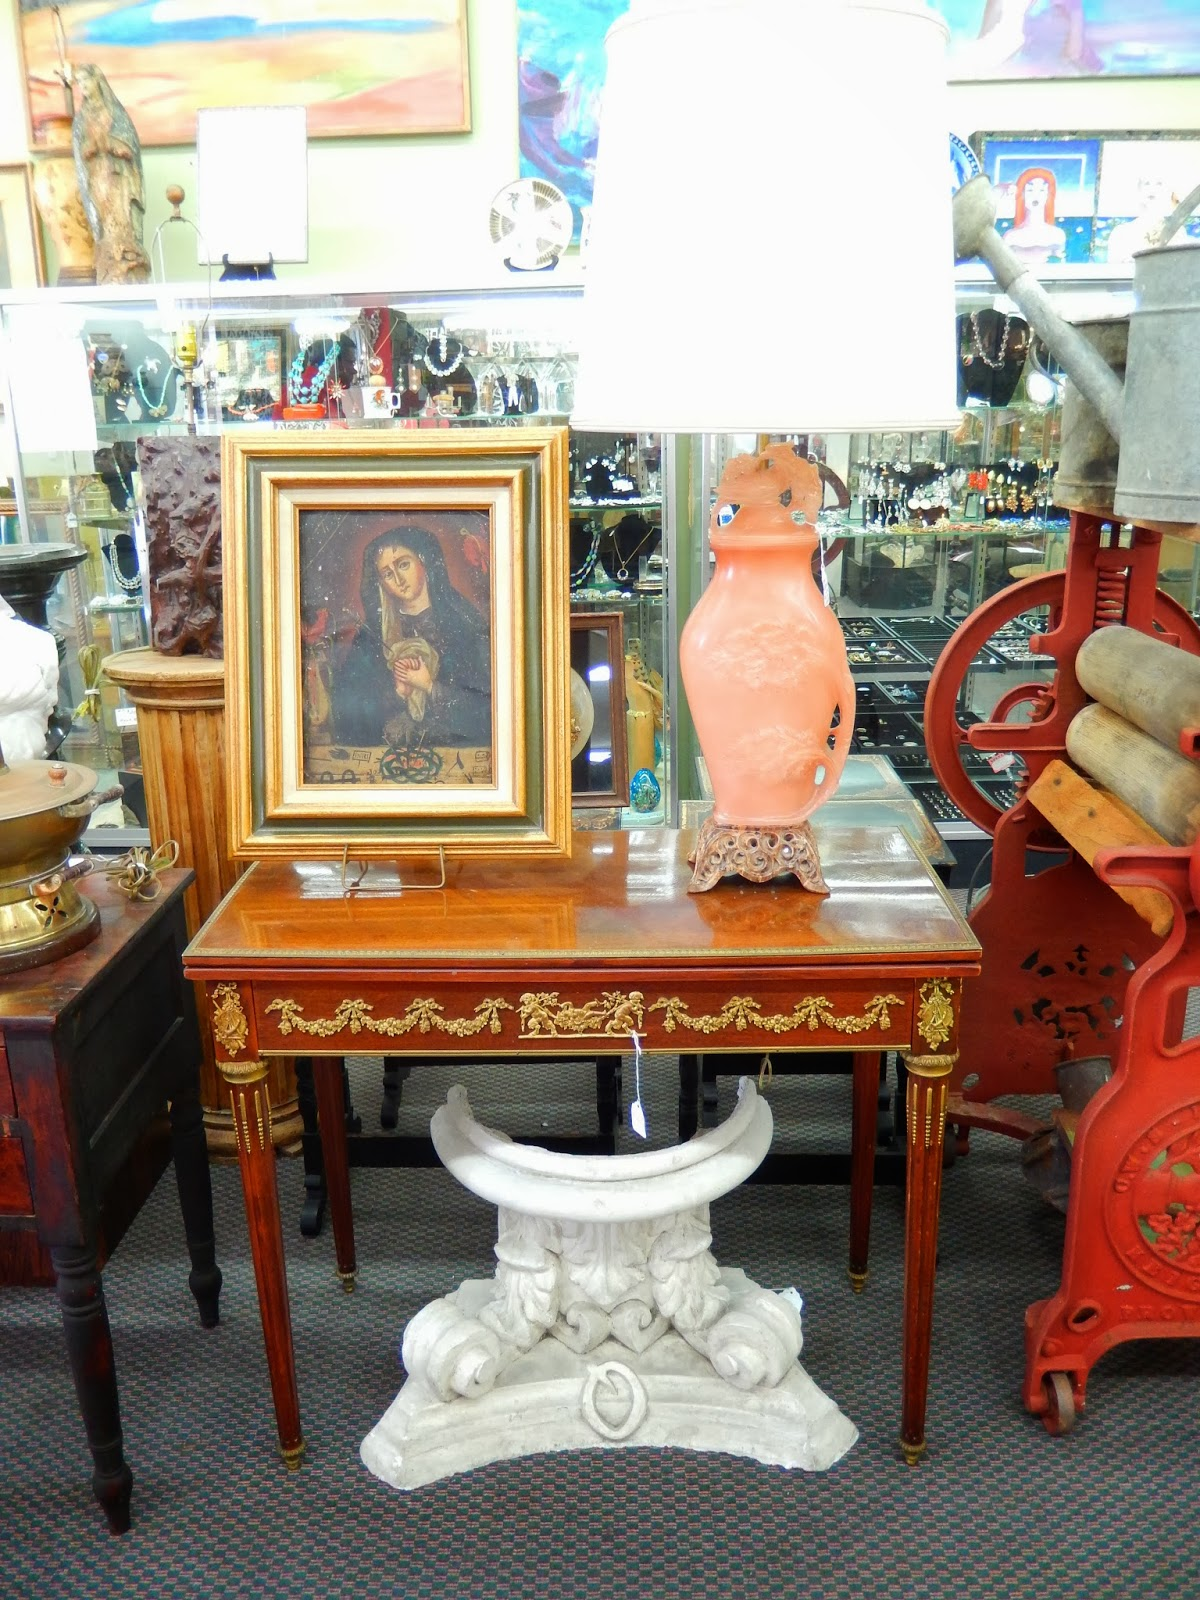 Newport avenue antiques: february 2014